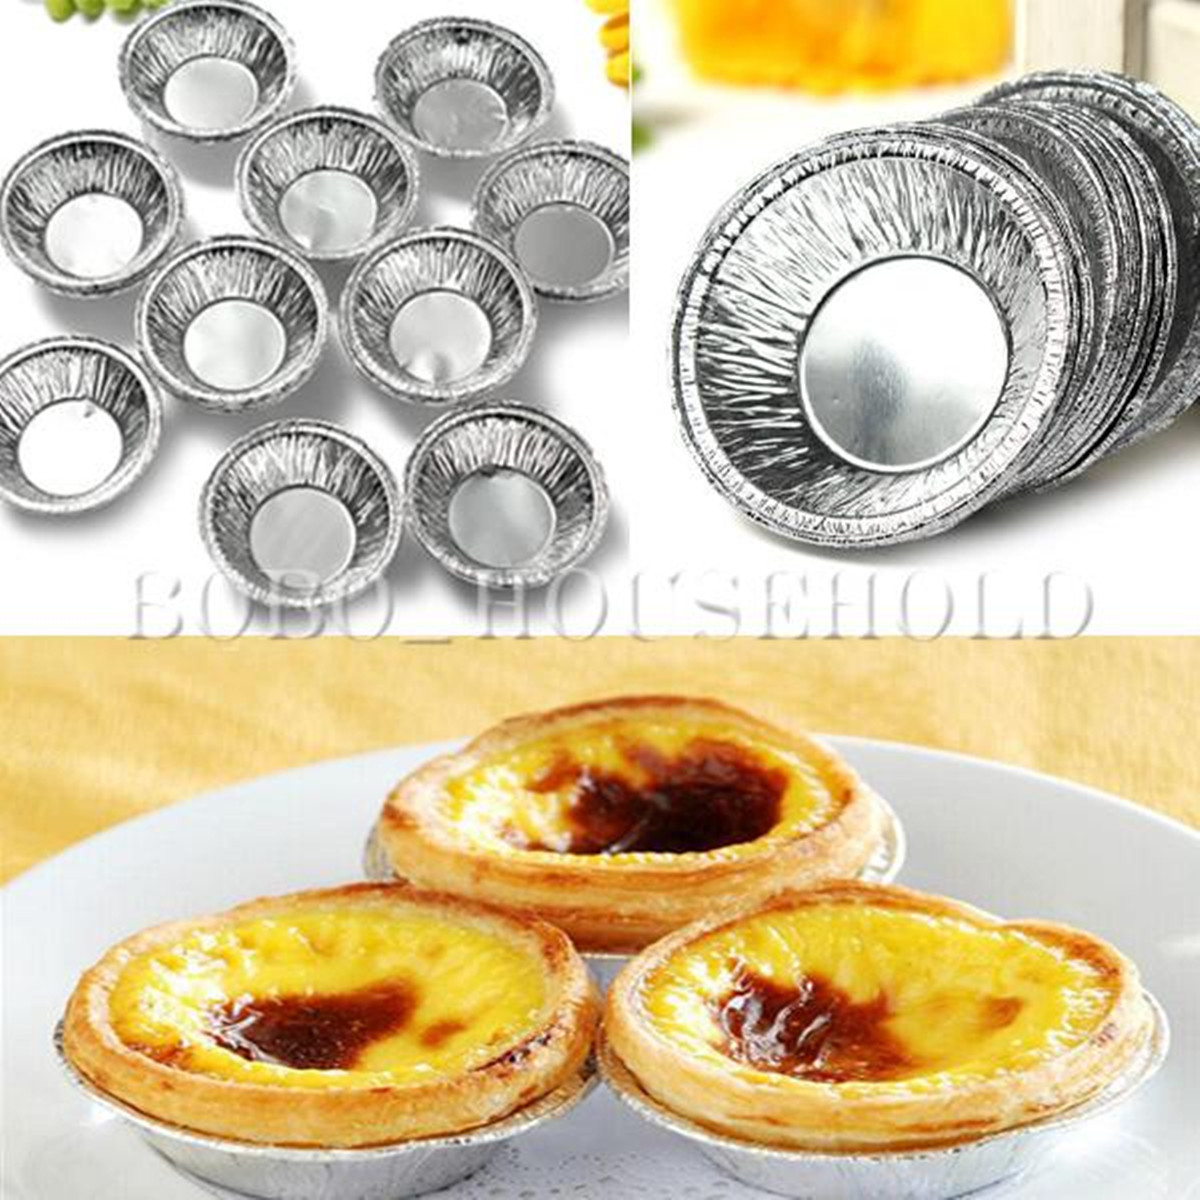 Click here to buy 125 Pcs Disposable Aluminum Foil Cups Baking Bake Muffin Cupcake Tin Mold Round EggTart Tins Mold Mould.